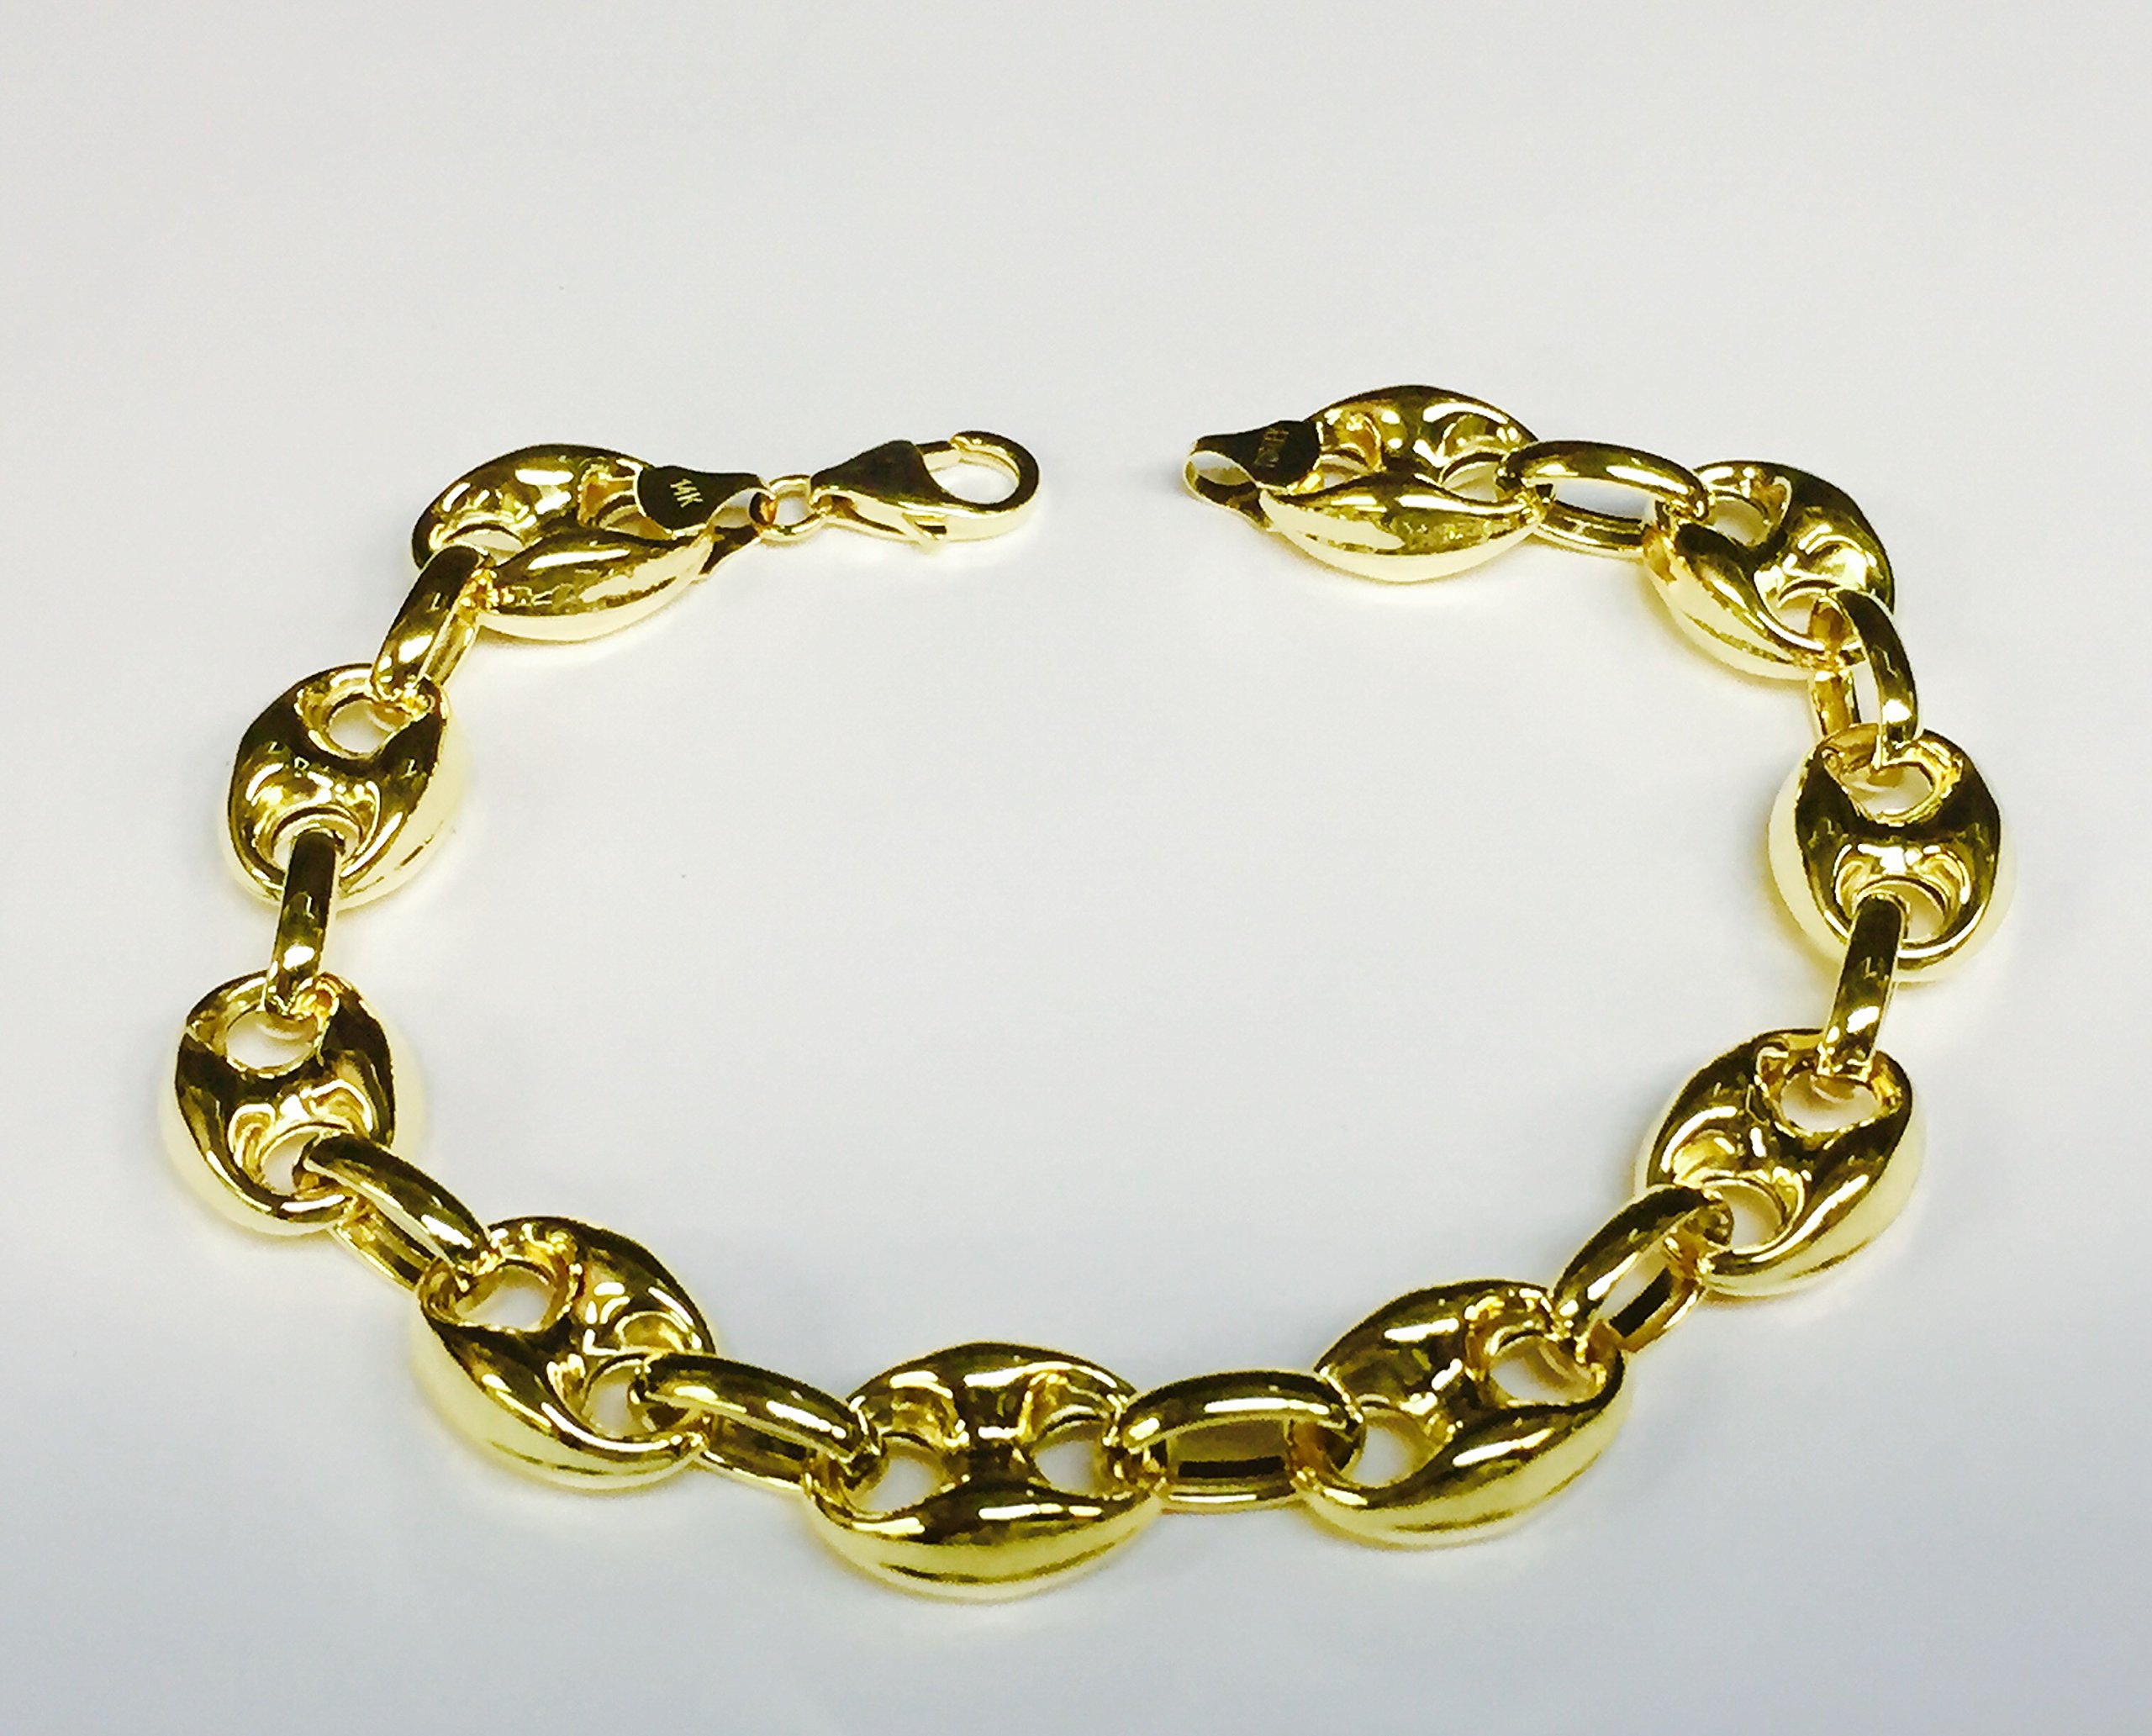 14k Yellow Gold Puffed Anchor Mariner 7.5'' link bracelet 11 MM 9 grams by TEX (Image #3)